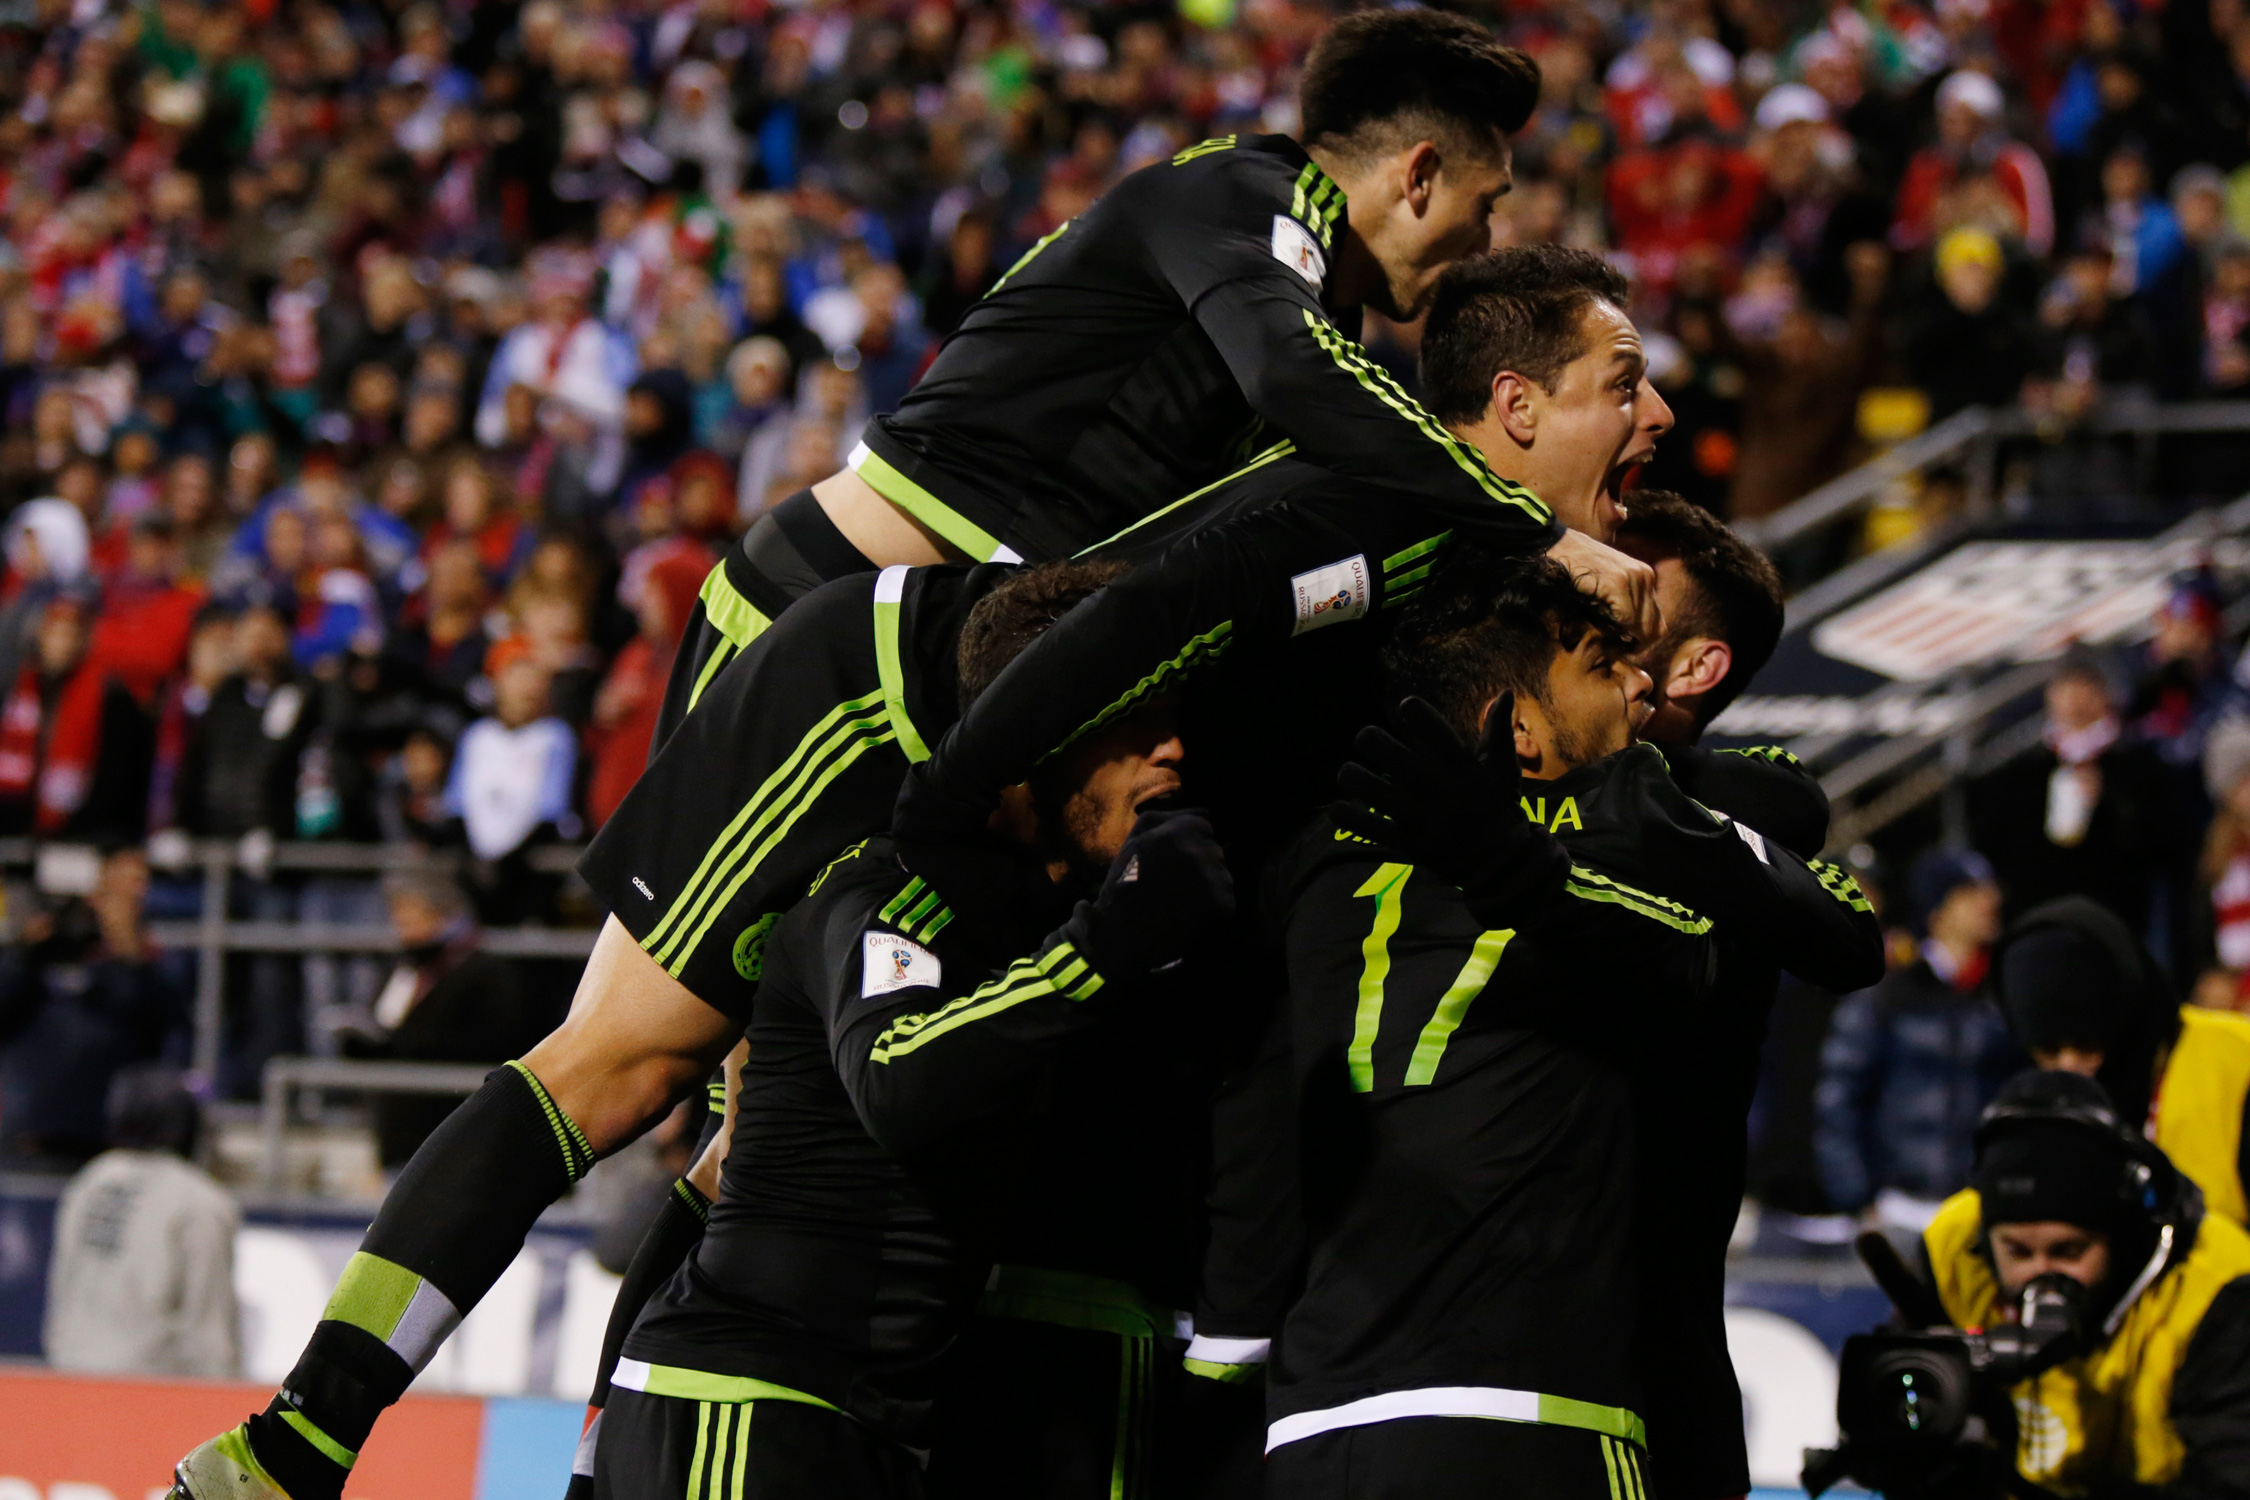 Mexico players celebrate Rafa Marquez's late winner, which delivered a 2-1 triumph for El Tri over the USA to open the CONCACAF Hexagonal. It ended years of U.S. domination over Mexico in Columbus.